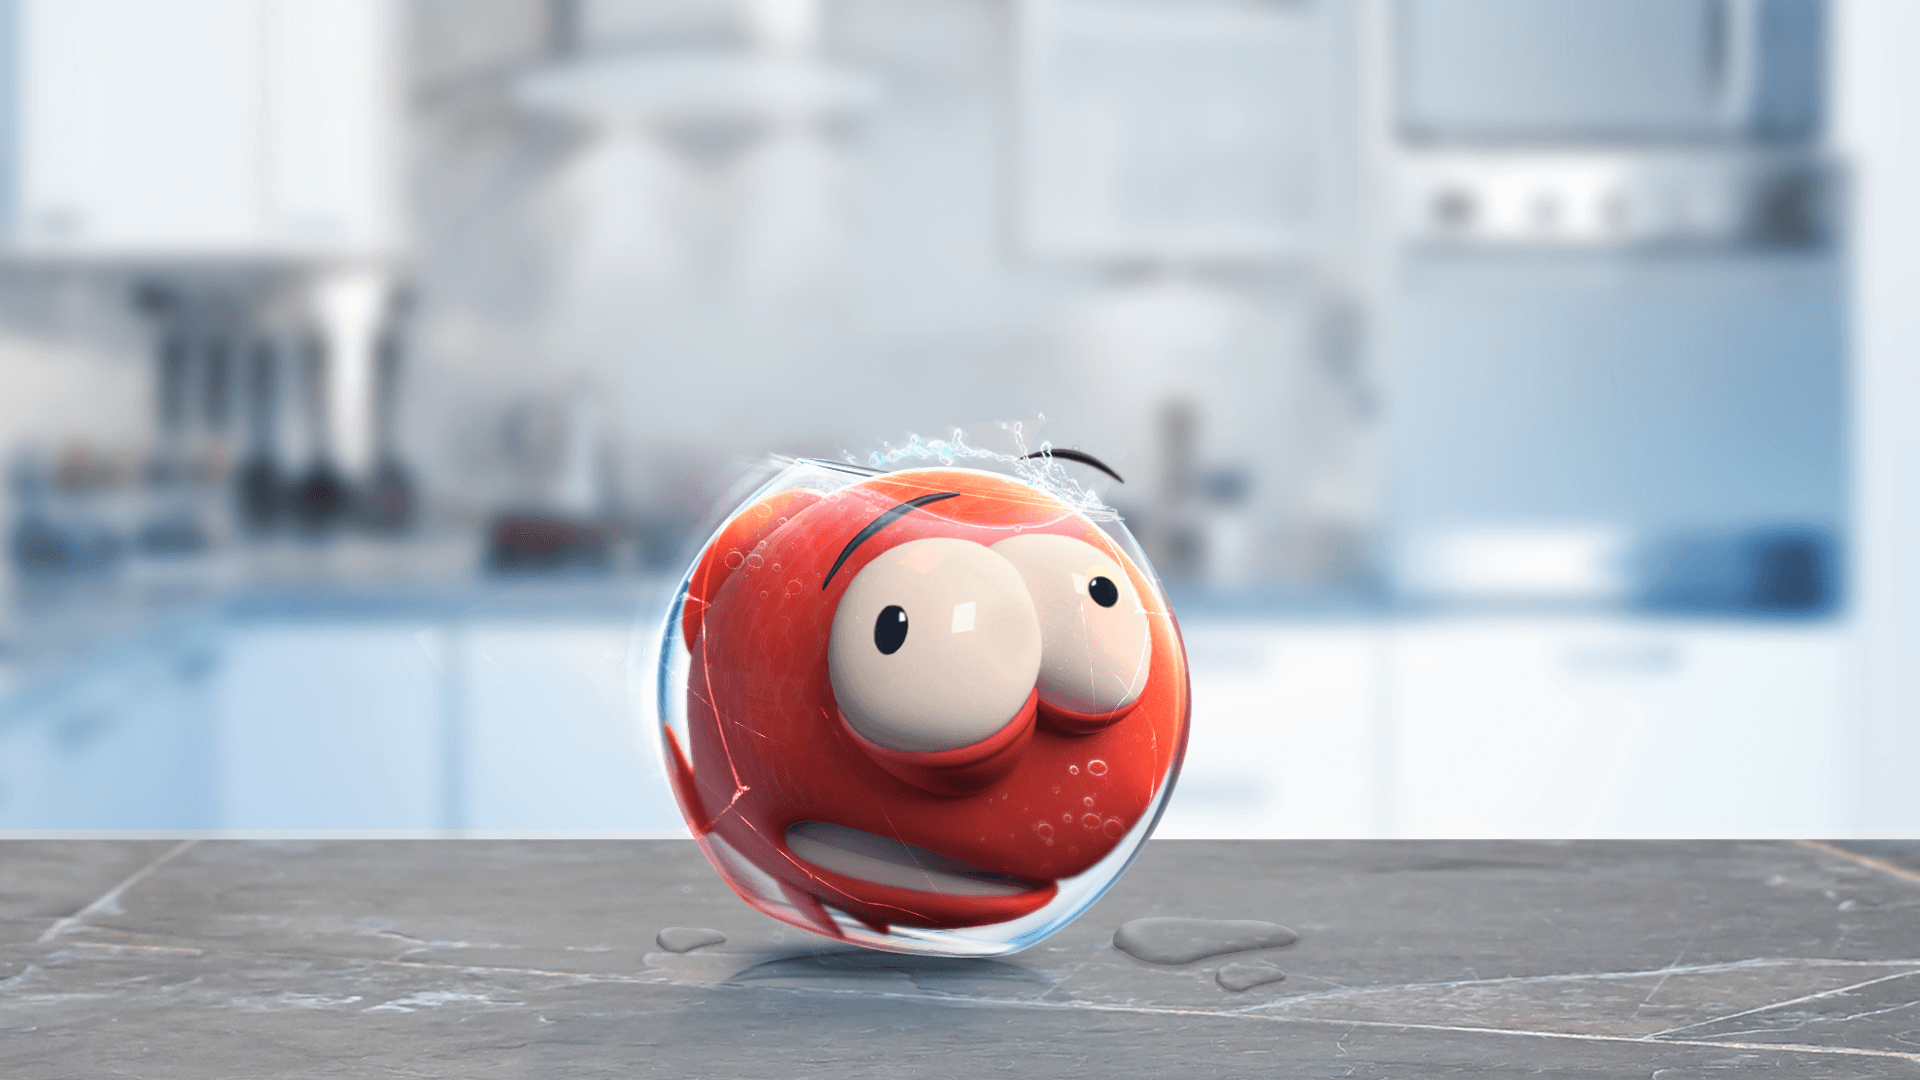 Tencent Video signs co-production deals with three major European studios for Tencent Kids original shows